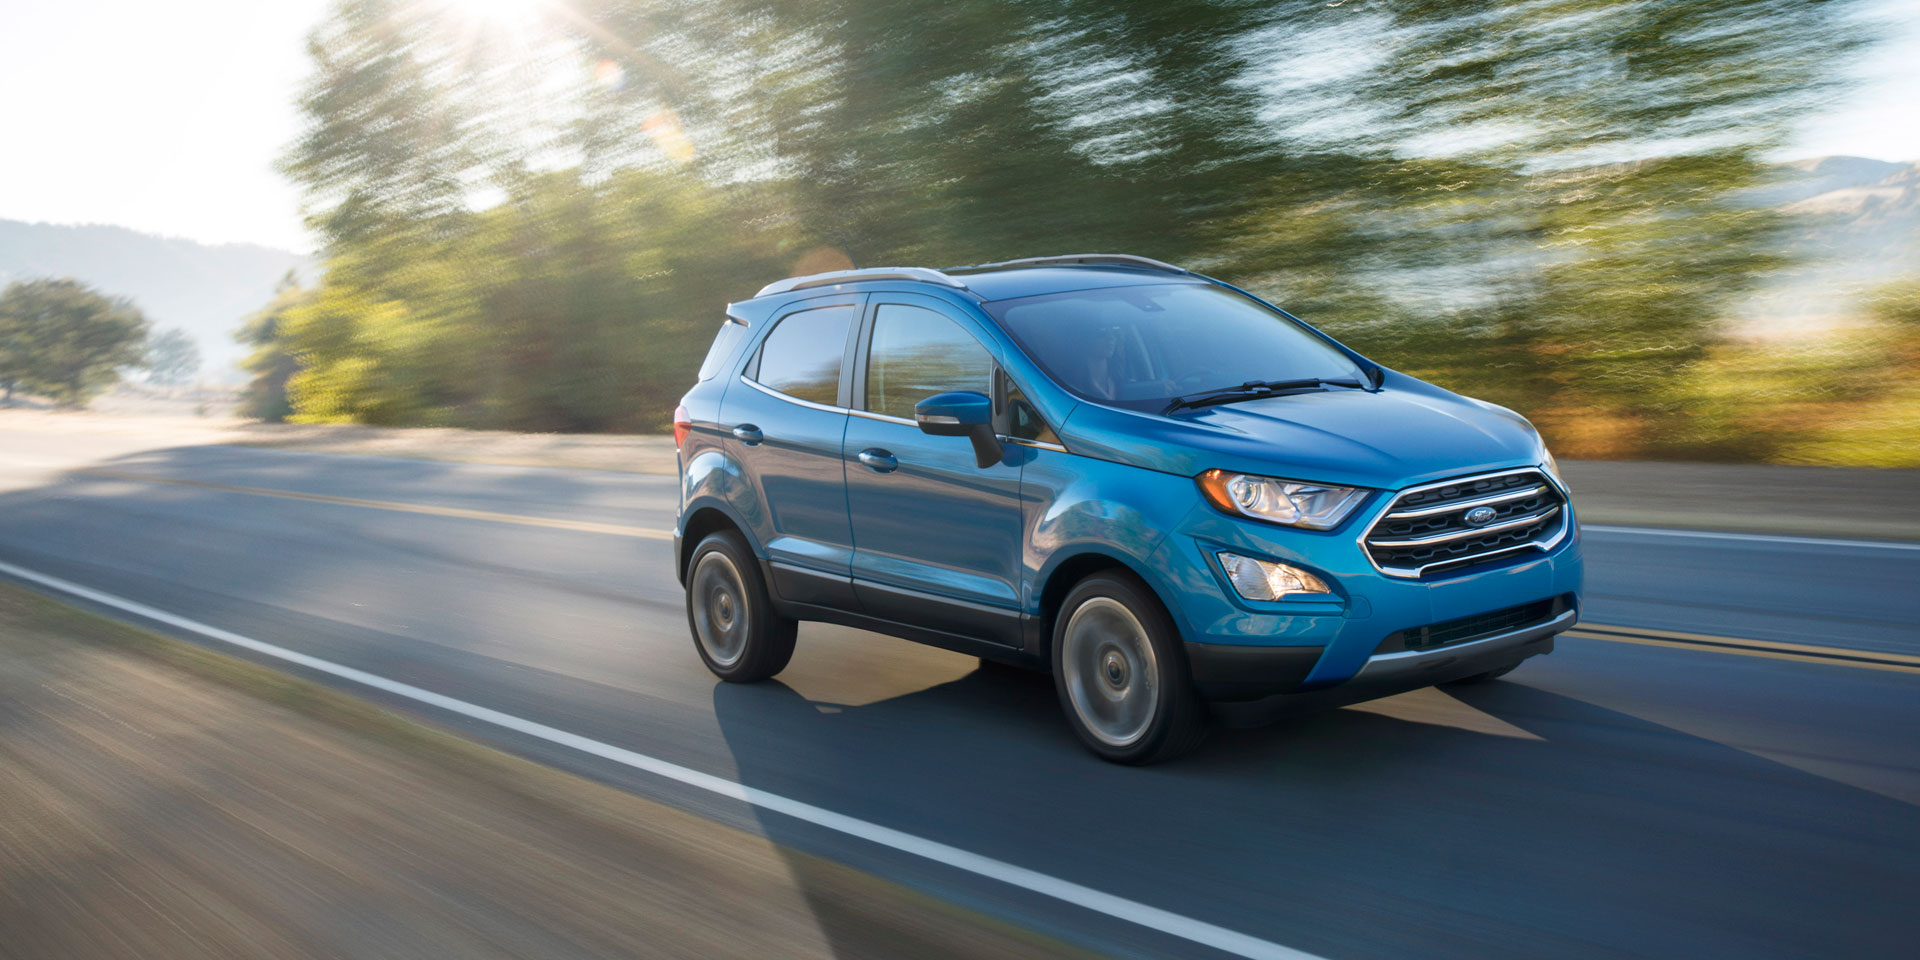 2019 Ford Ecosport Vehicles On Display Chicago Auto Show